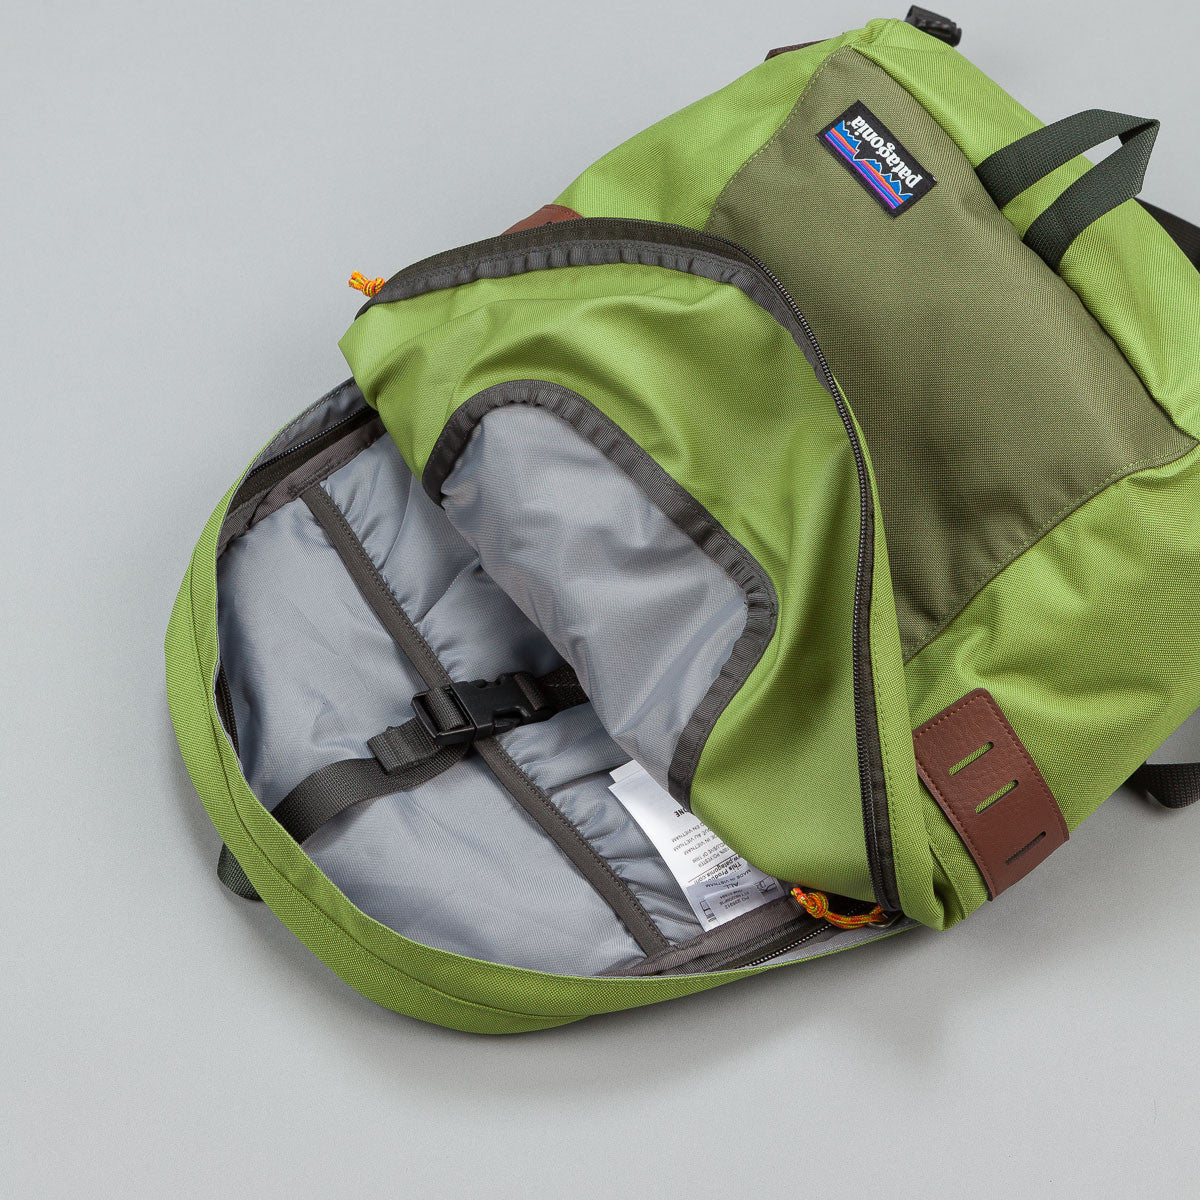 Patagonia Ironwood Backpack - Supply Green